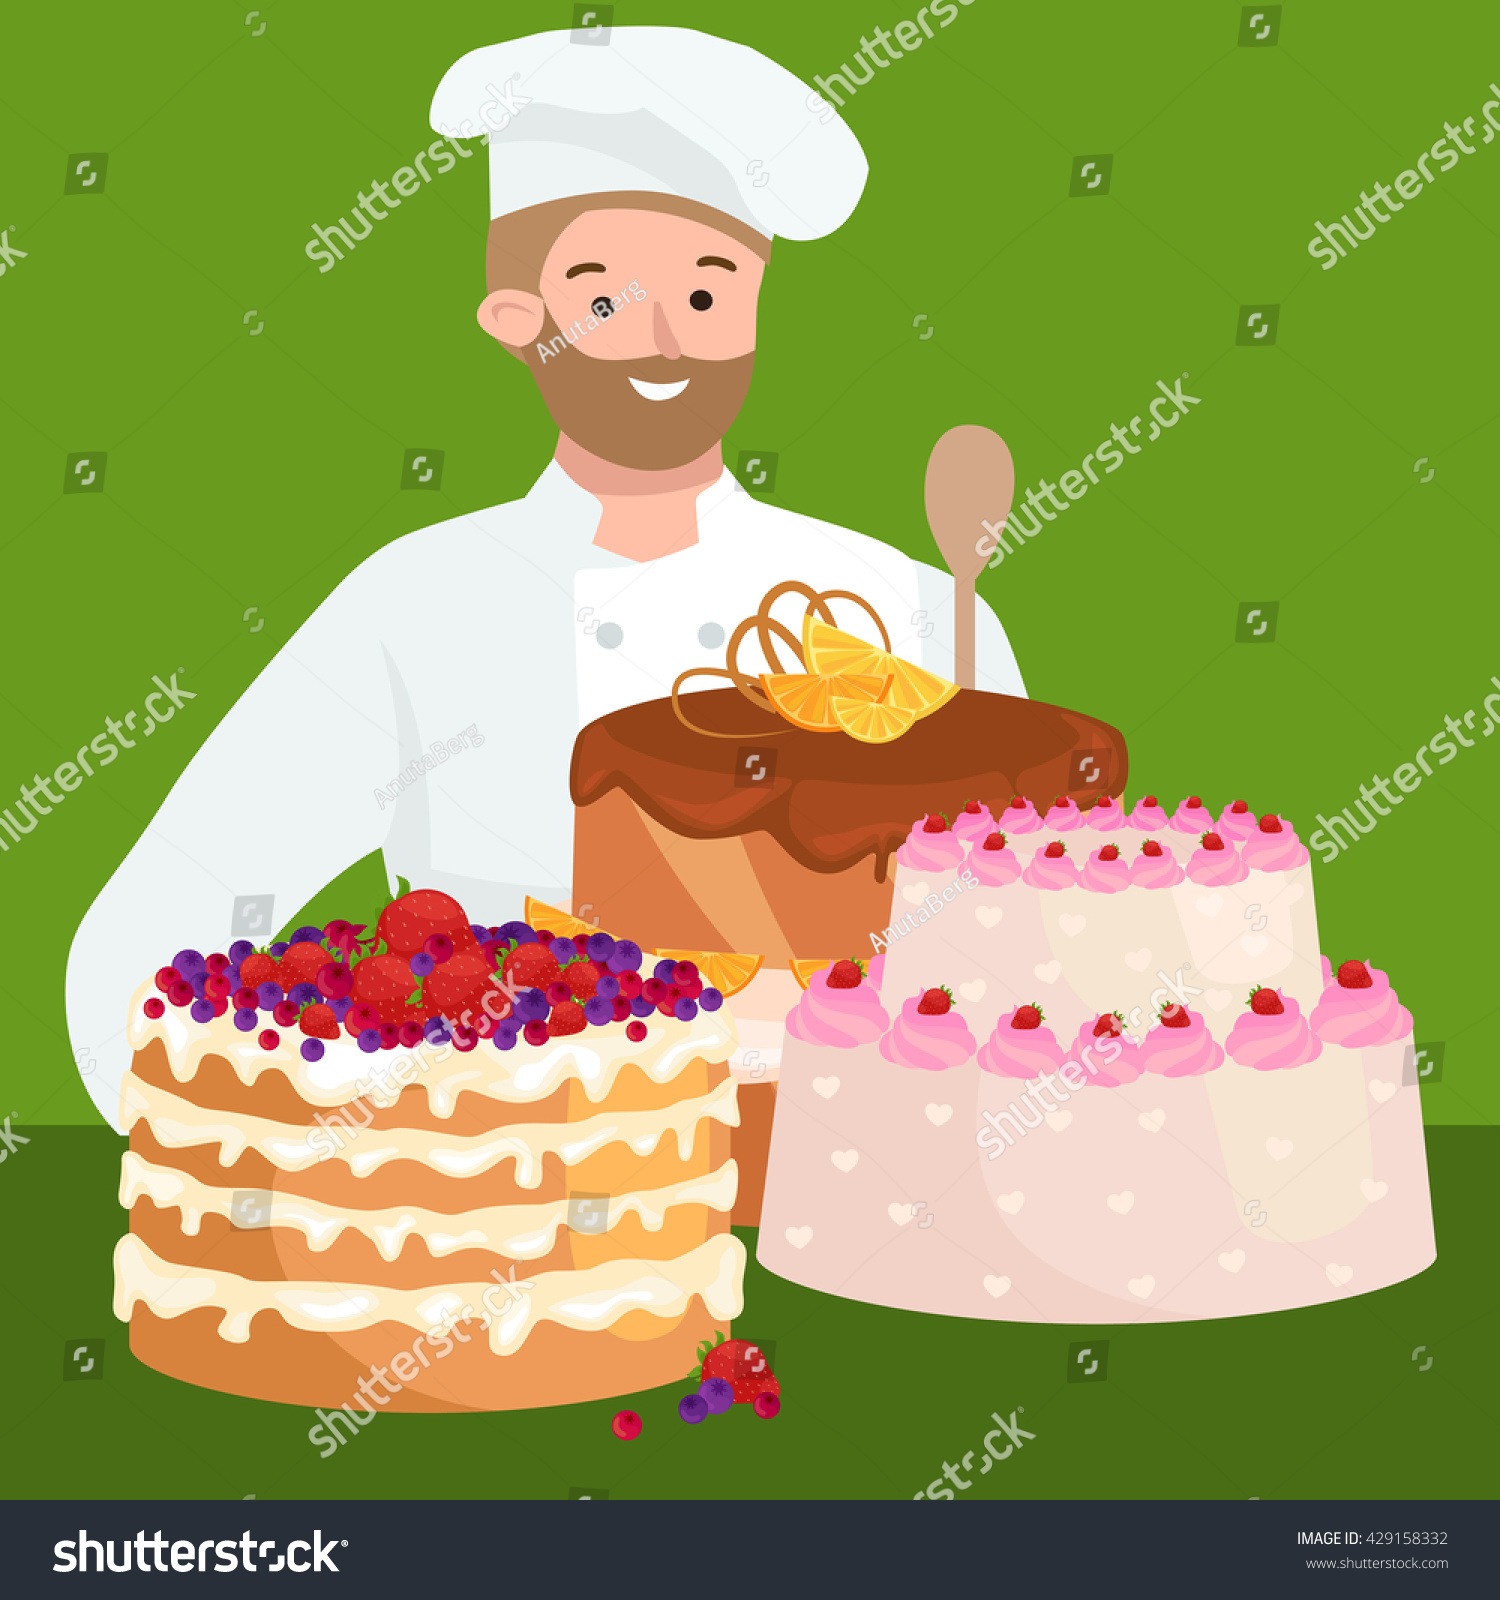 Confectioner Cook Chef Cartoon Character Cake Stock Vector Royalty